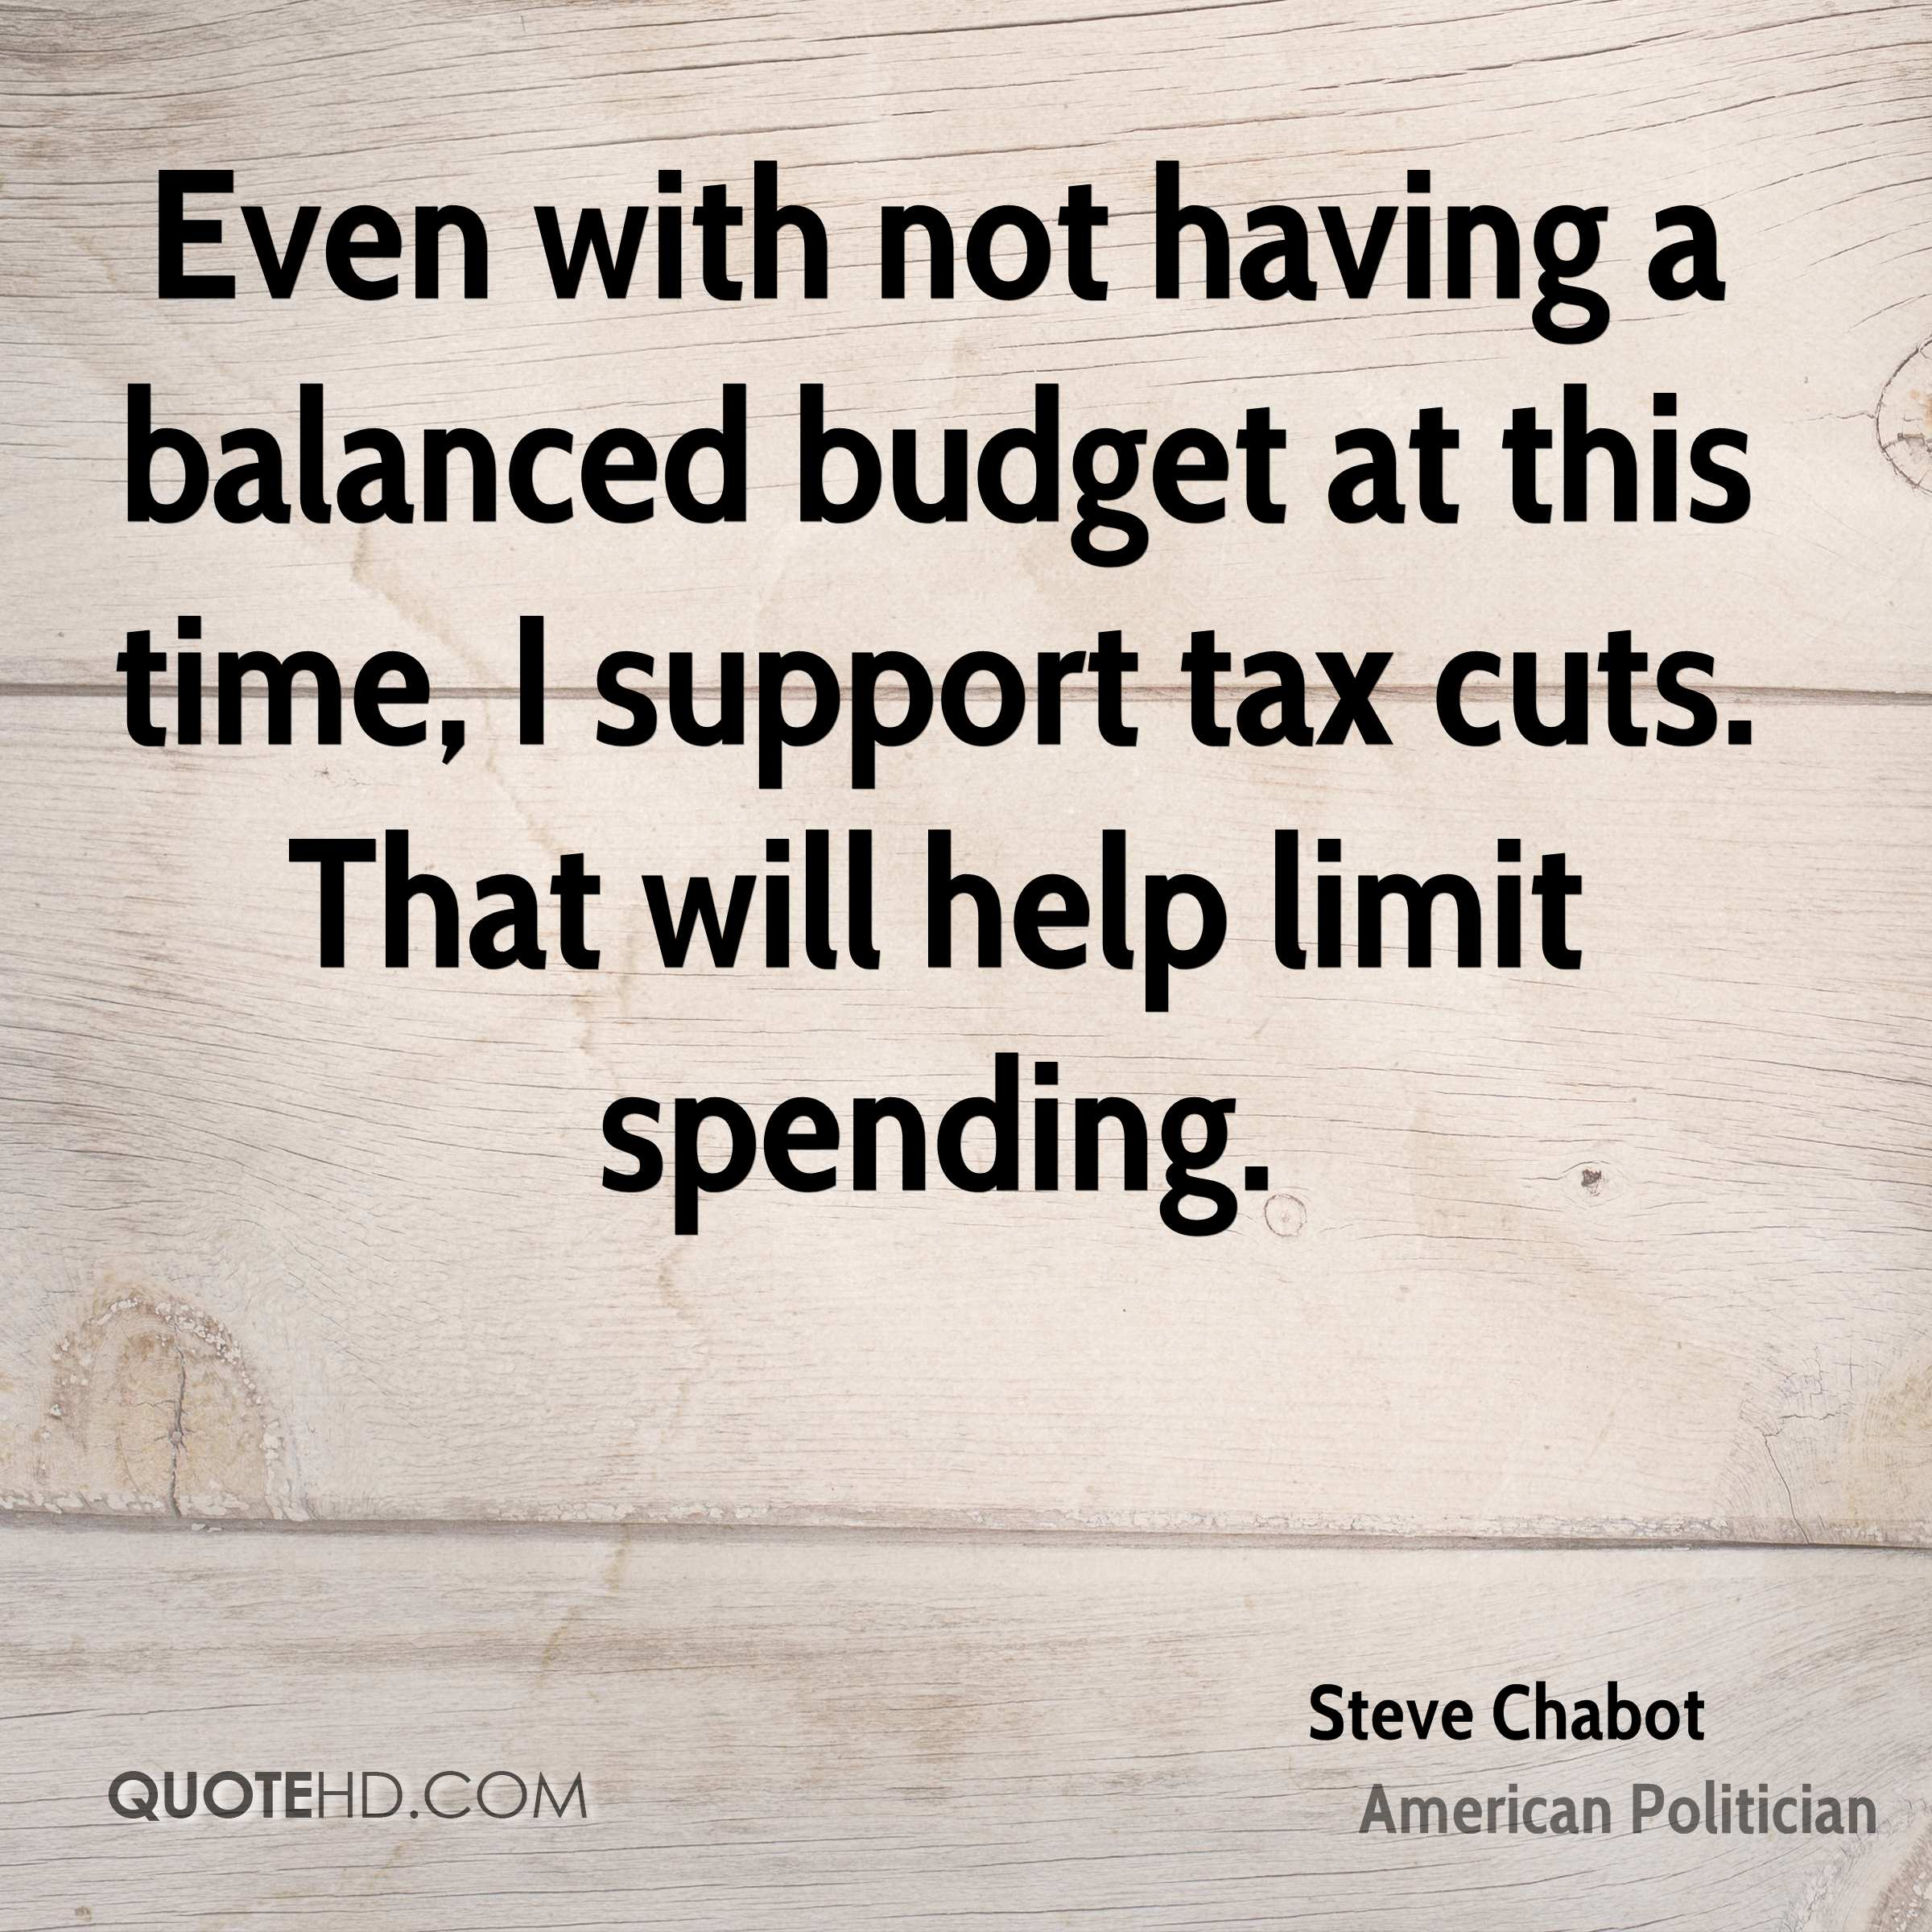 Even with not having a balanced budget at this time, I support tax cuts. That will help limit spending.